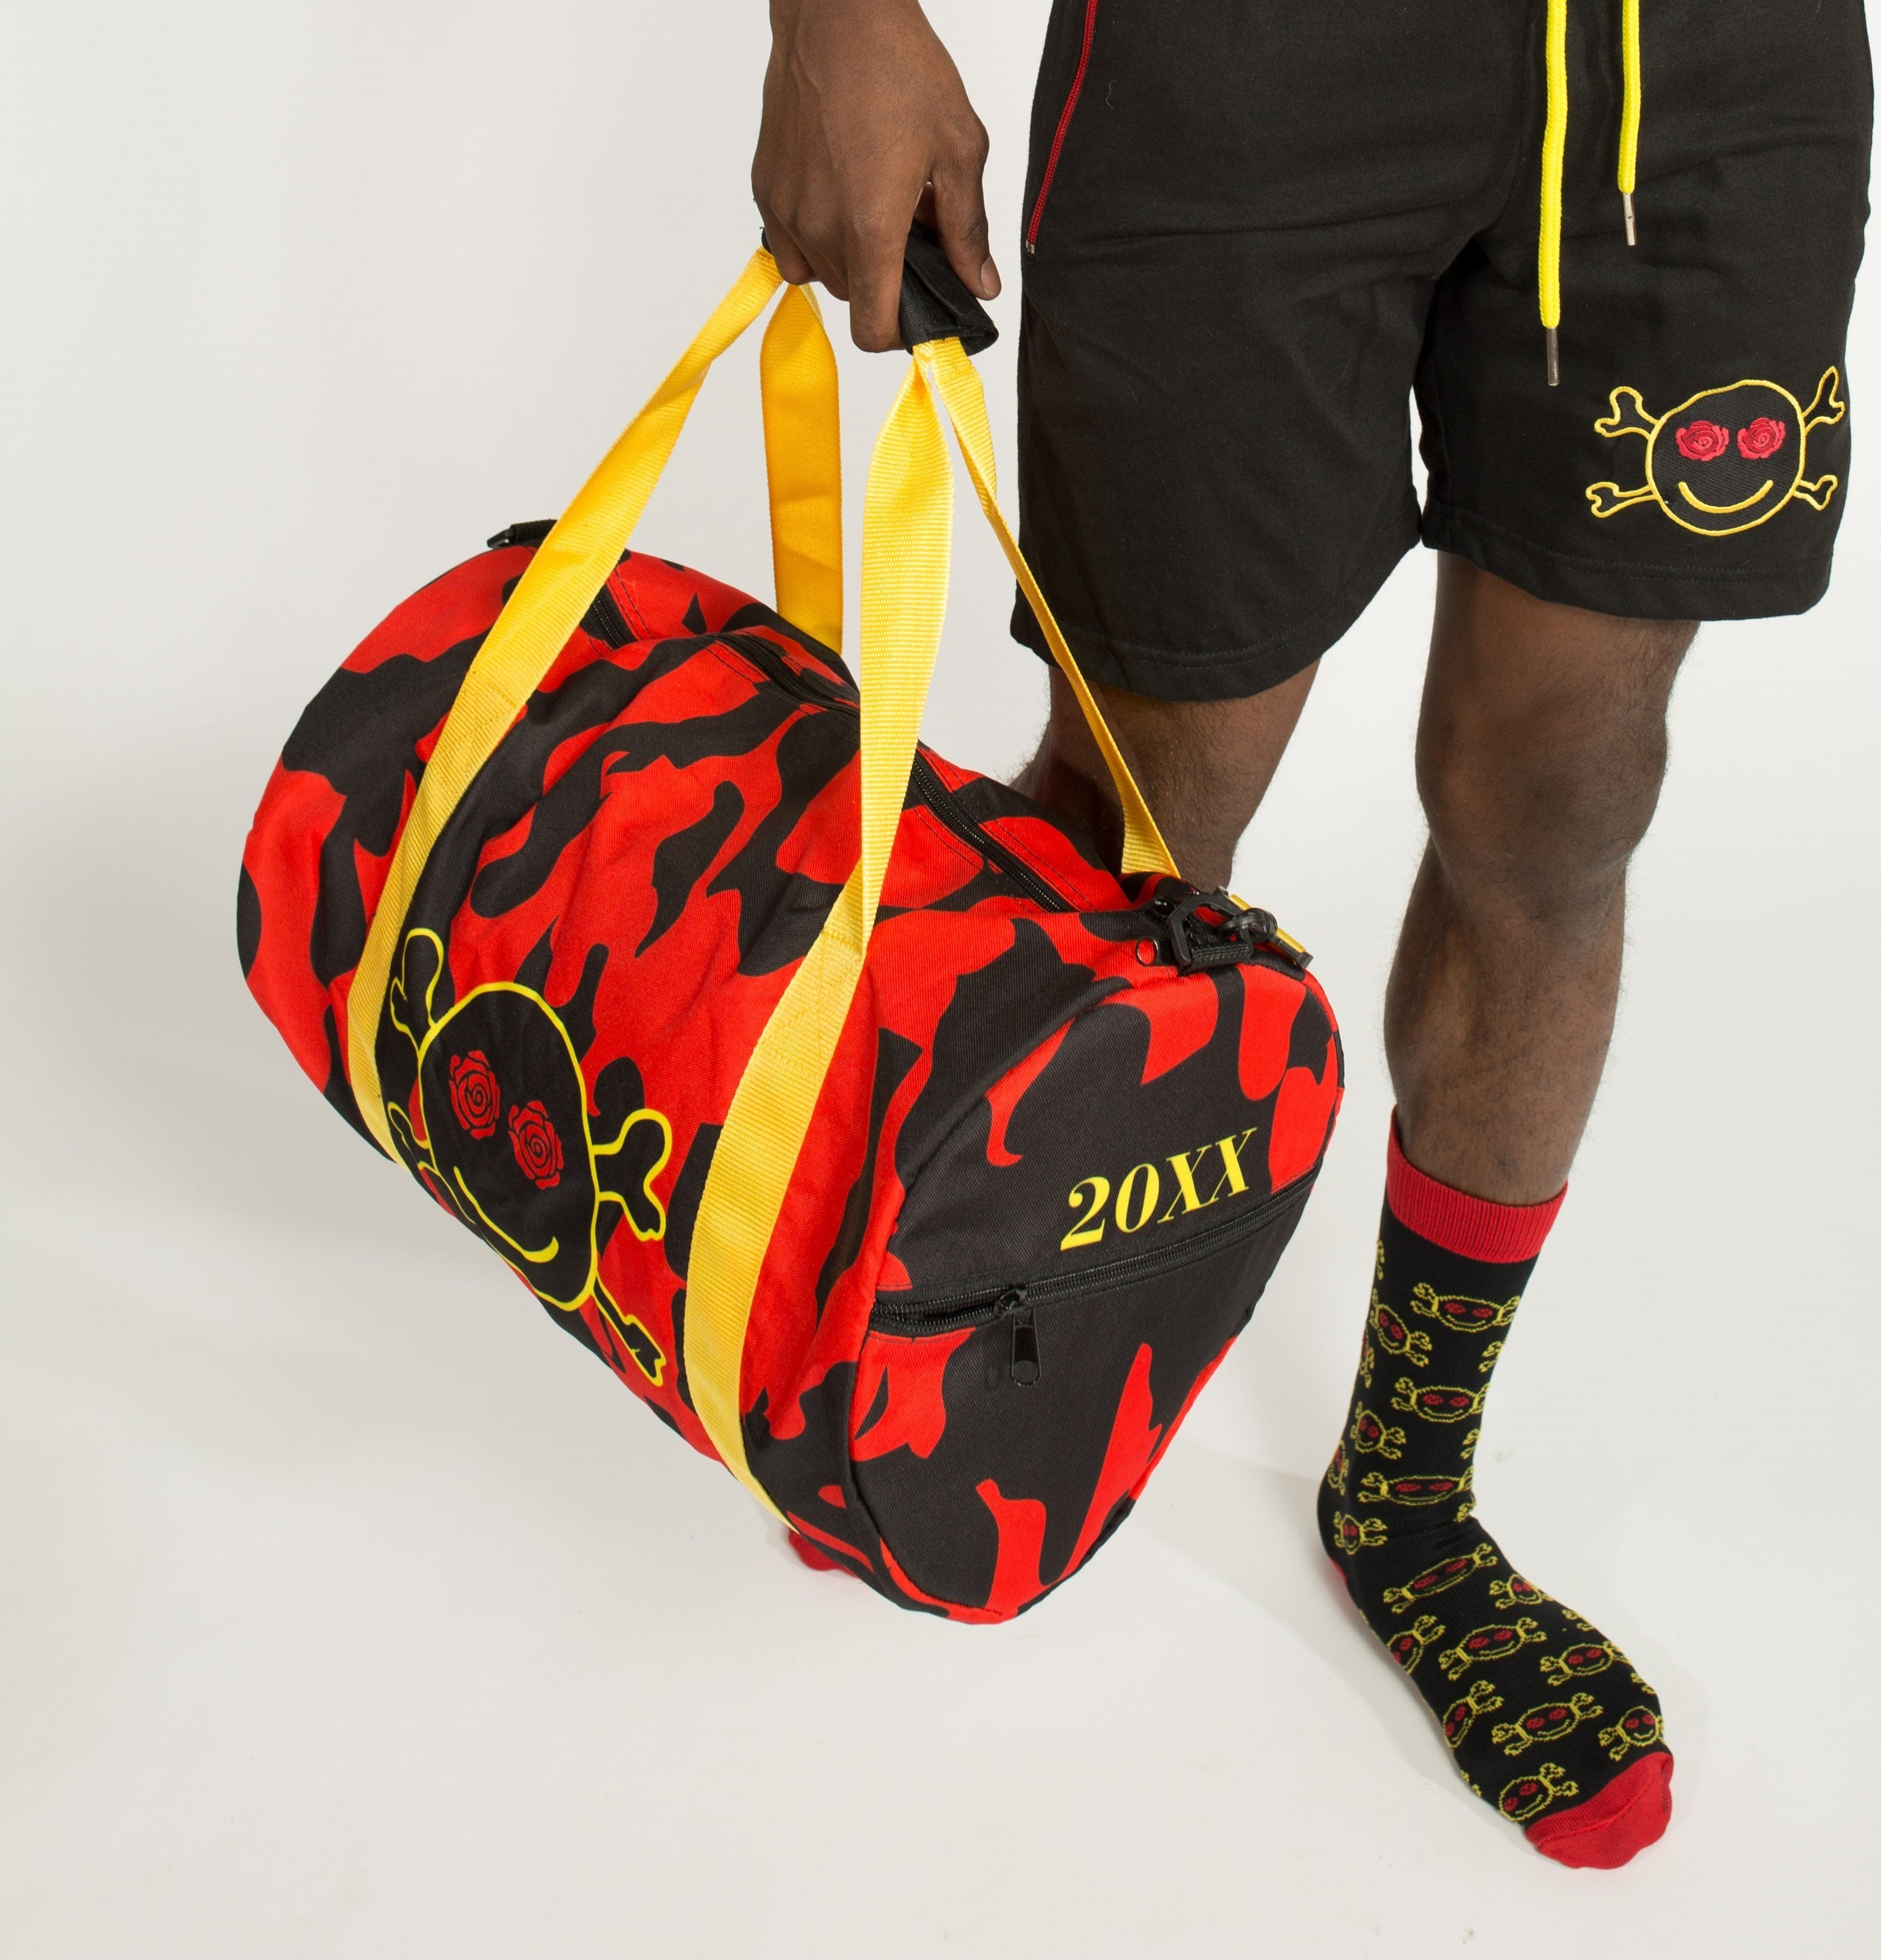 Red Camo 20XX Duffle Bag